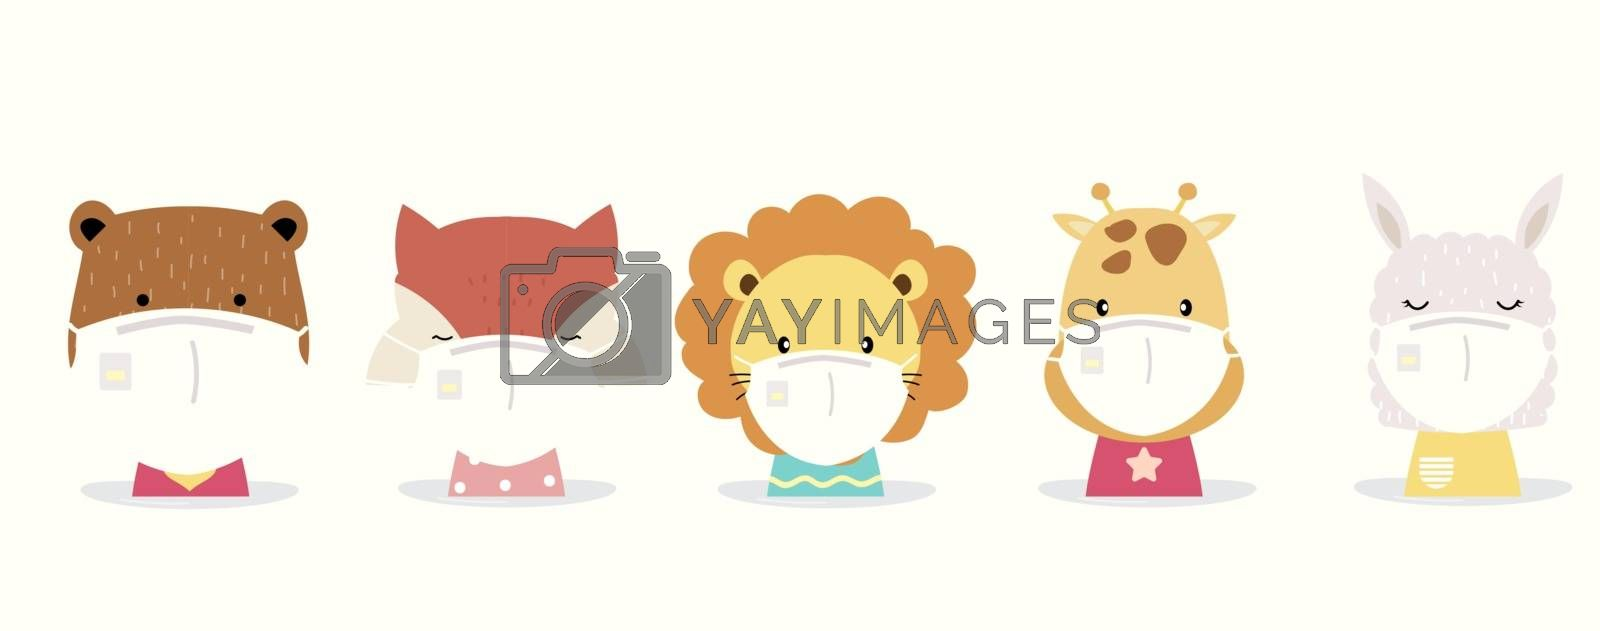 Cute animal object collection with lion,fox,llama,bear,giraffe wear mask.Vector illustration for prevention the spread of bacteria,coronviruses